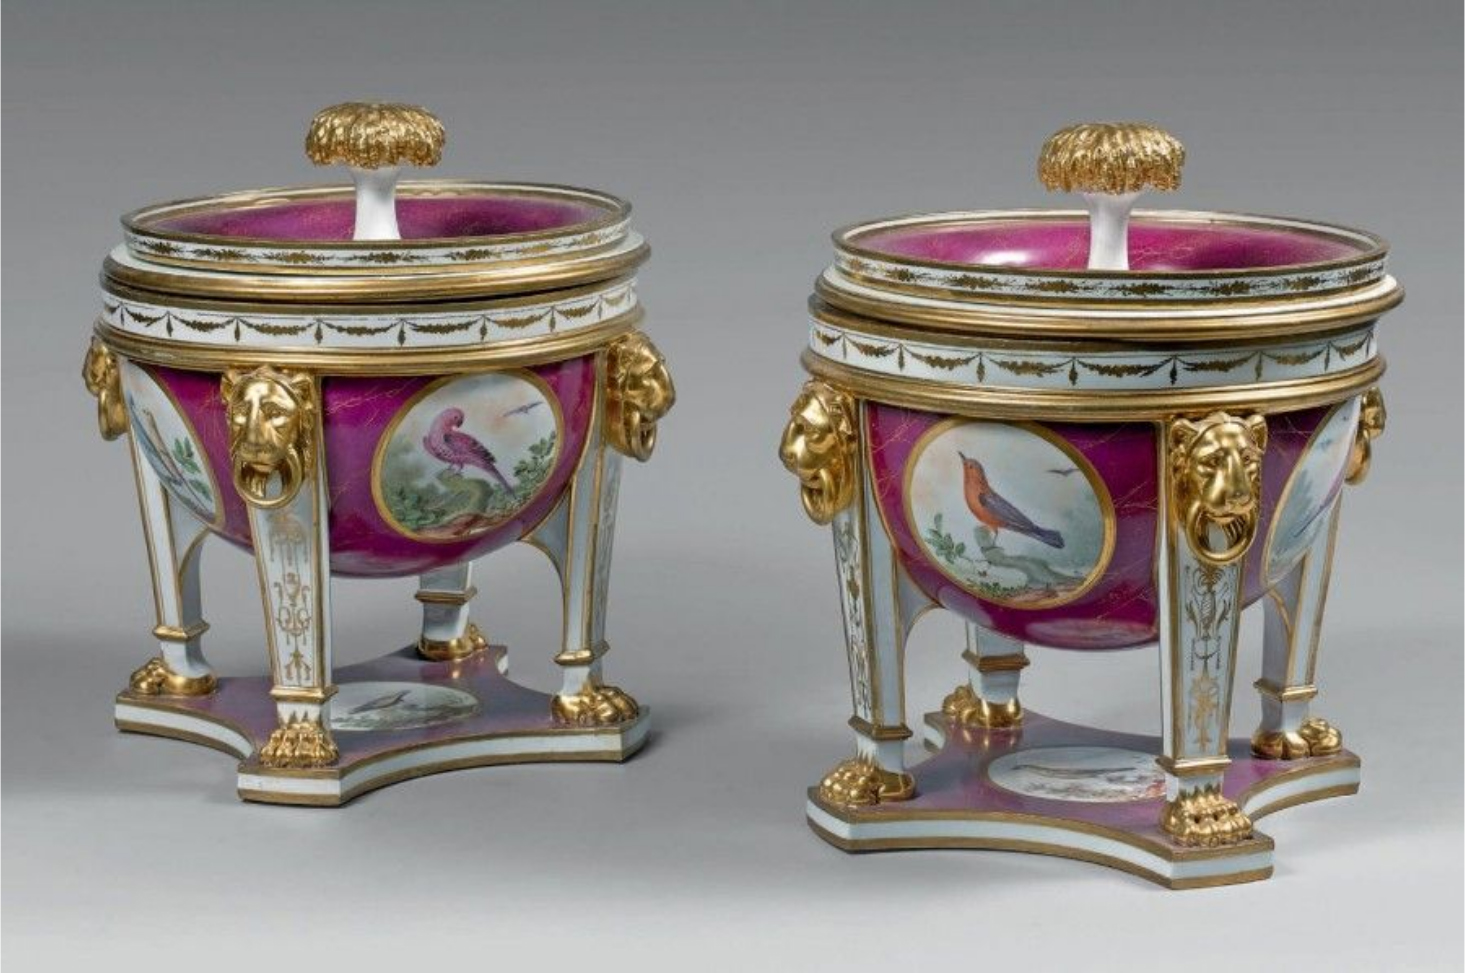 €11,250Sèvres, pair of hard-paste porcelain lidded coolers standing on four feet, polychrome decoration of birds, c. 1785, h. 22.5 cm/8.9